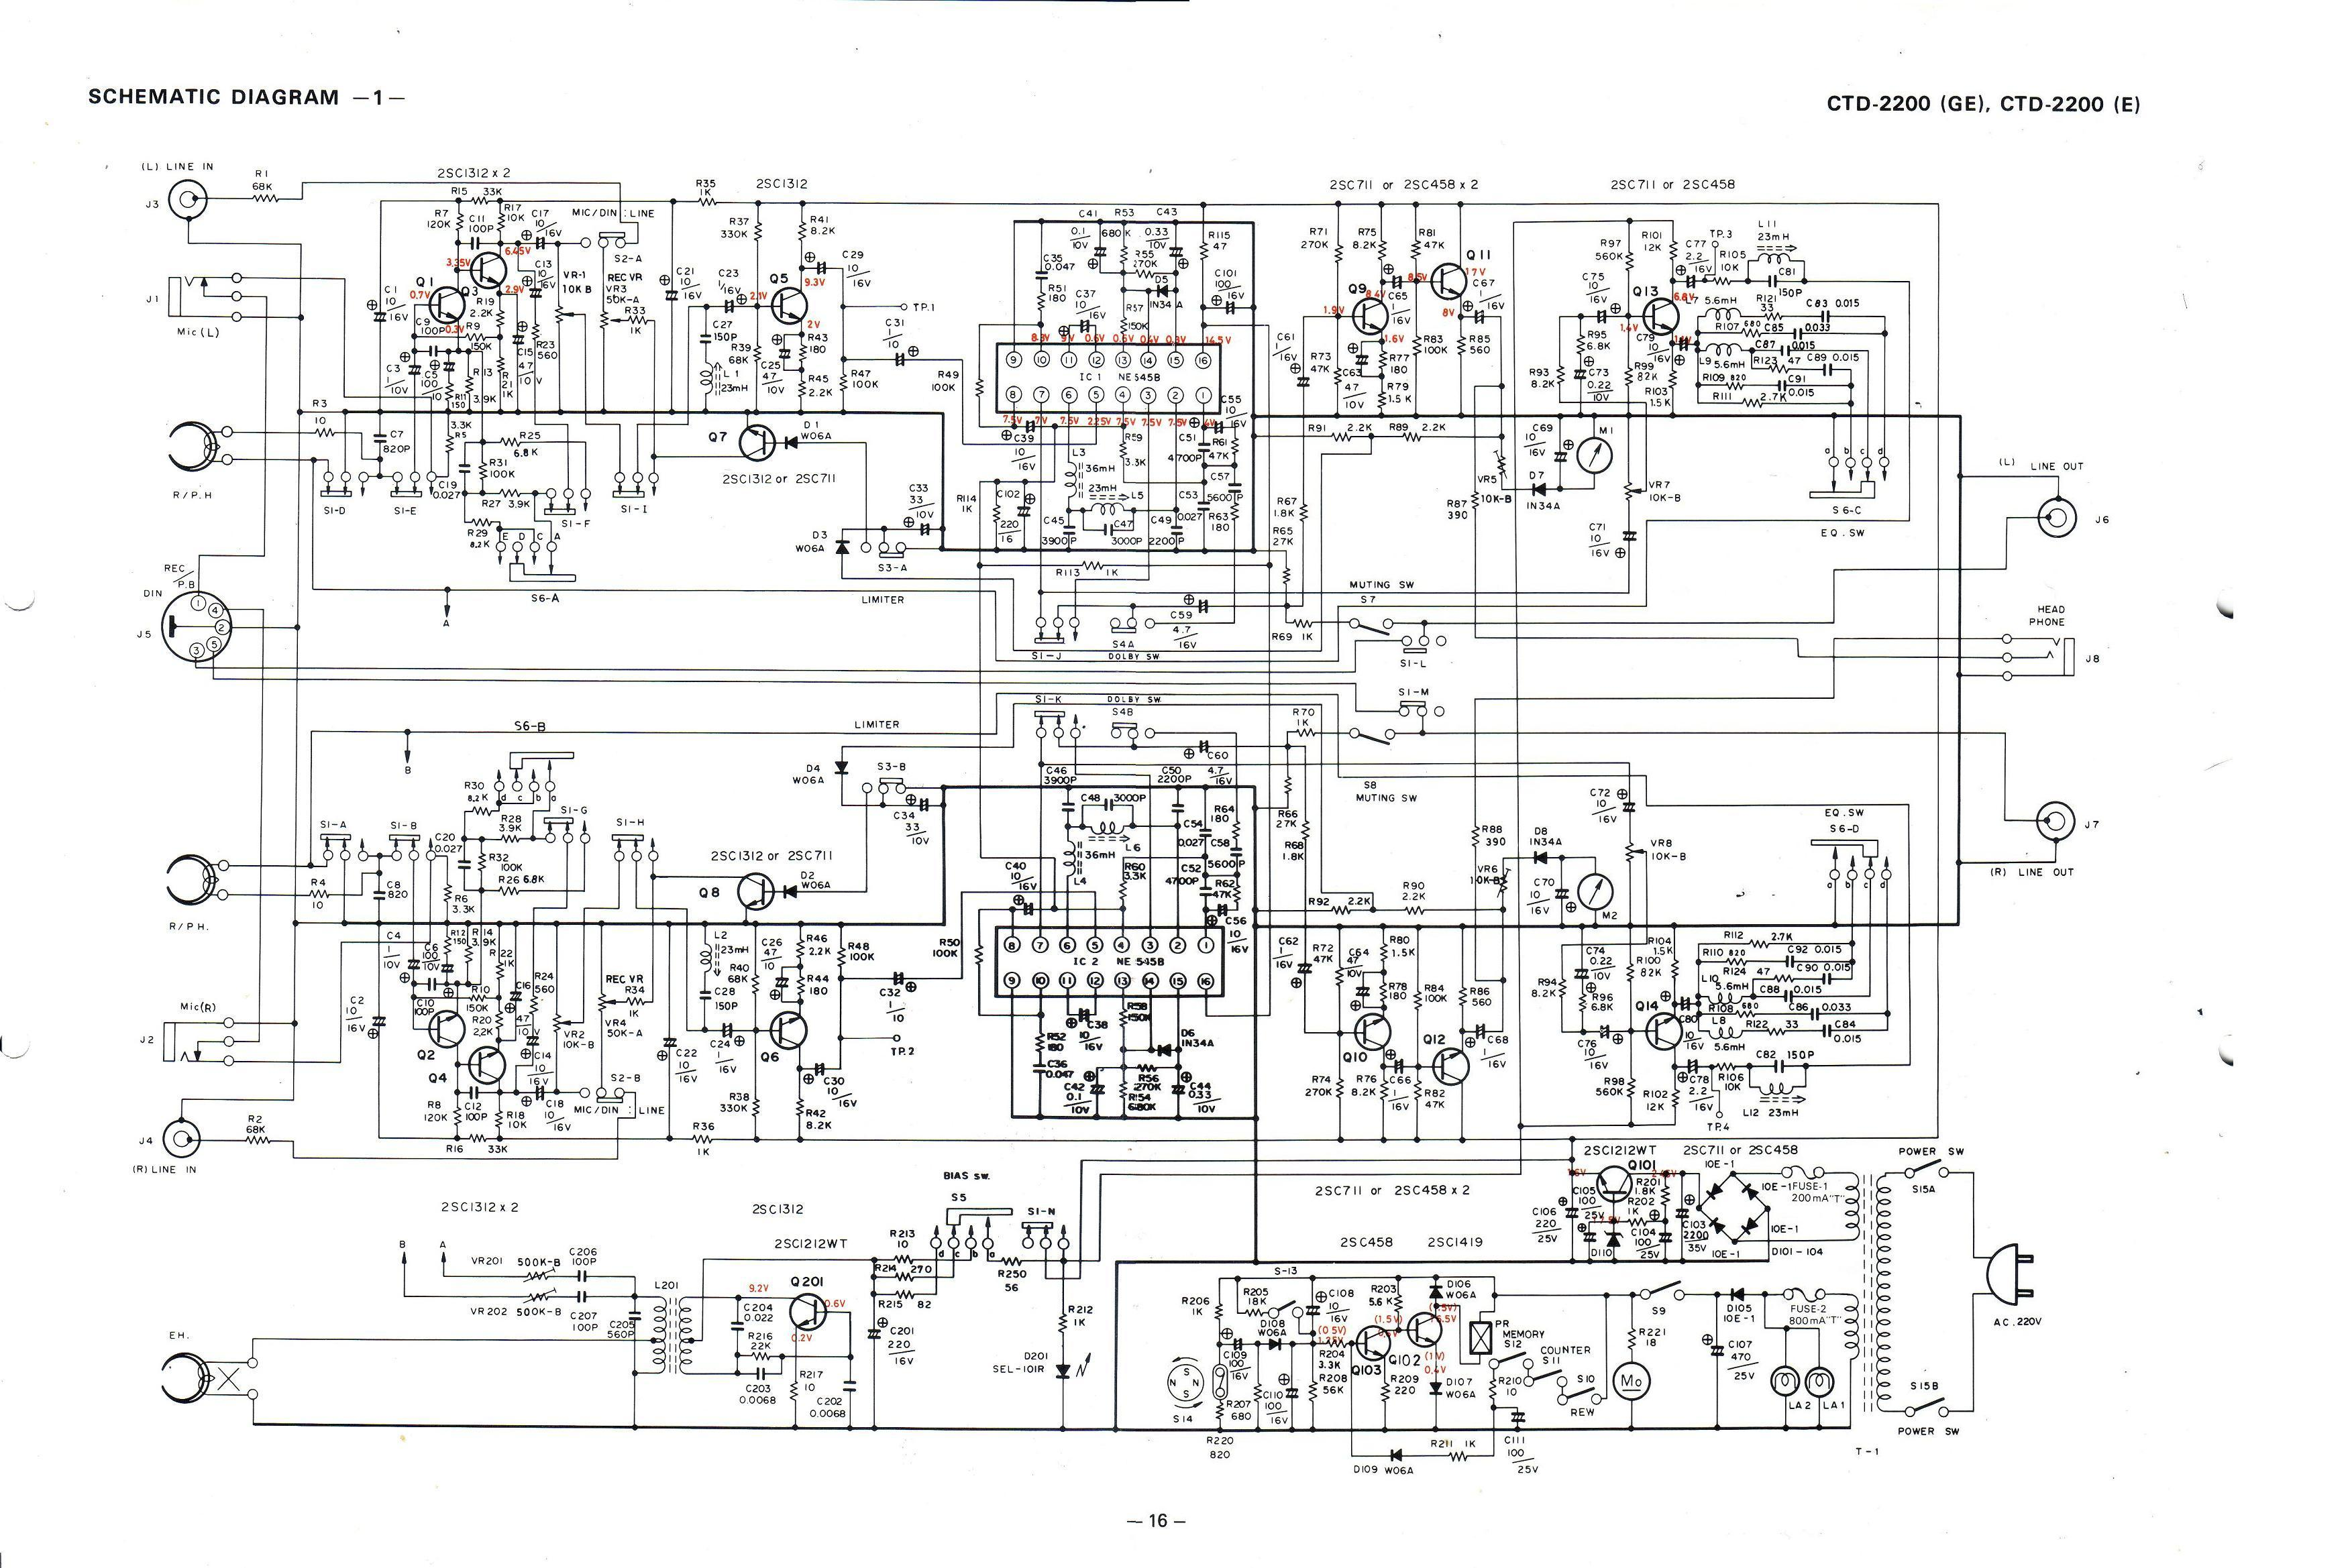 2001 crown vic fuse diagram vintage technics, crown ctd-2200